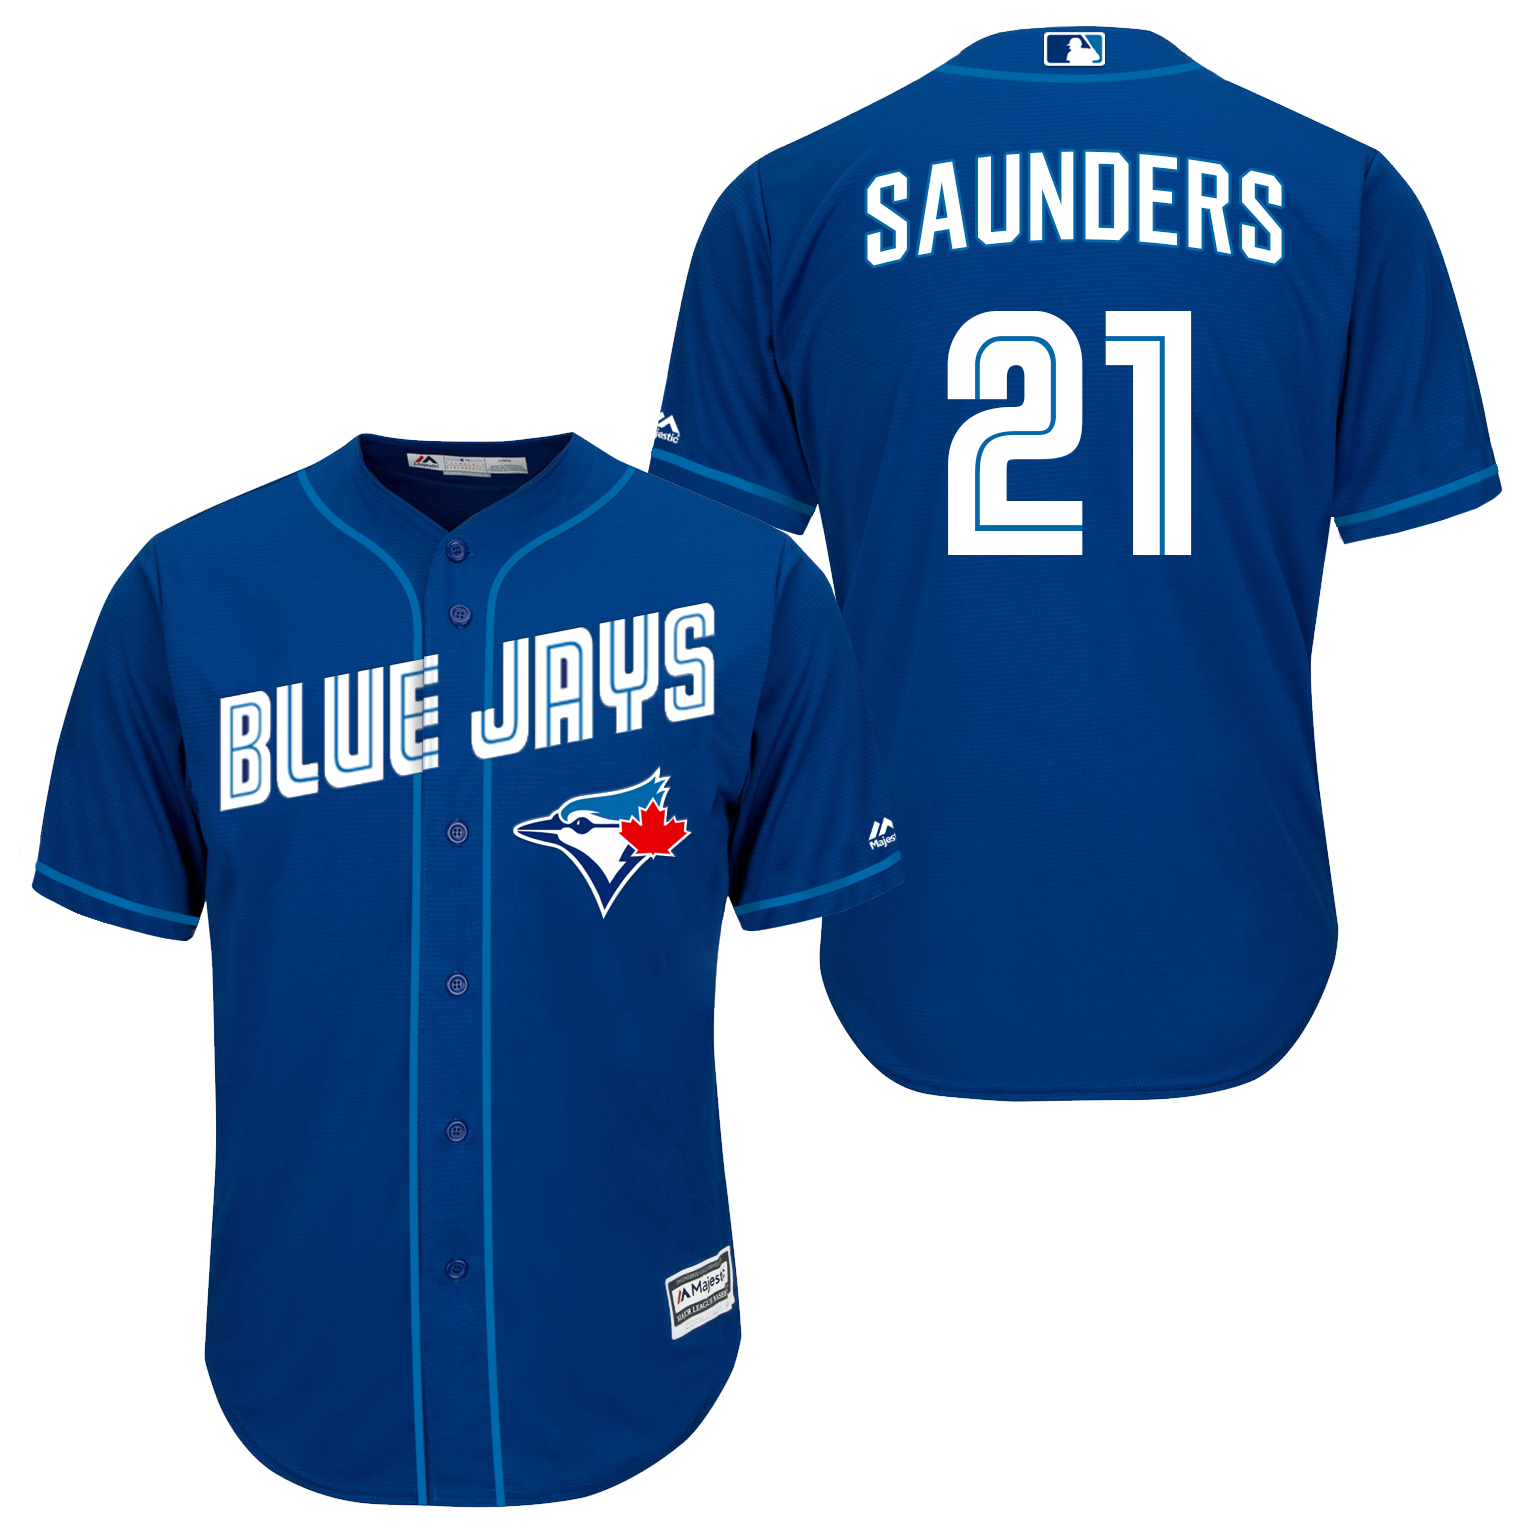 Blue Jays 21 Michael Saunders Royal Blue New Cool Base Jersey